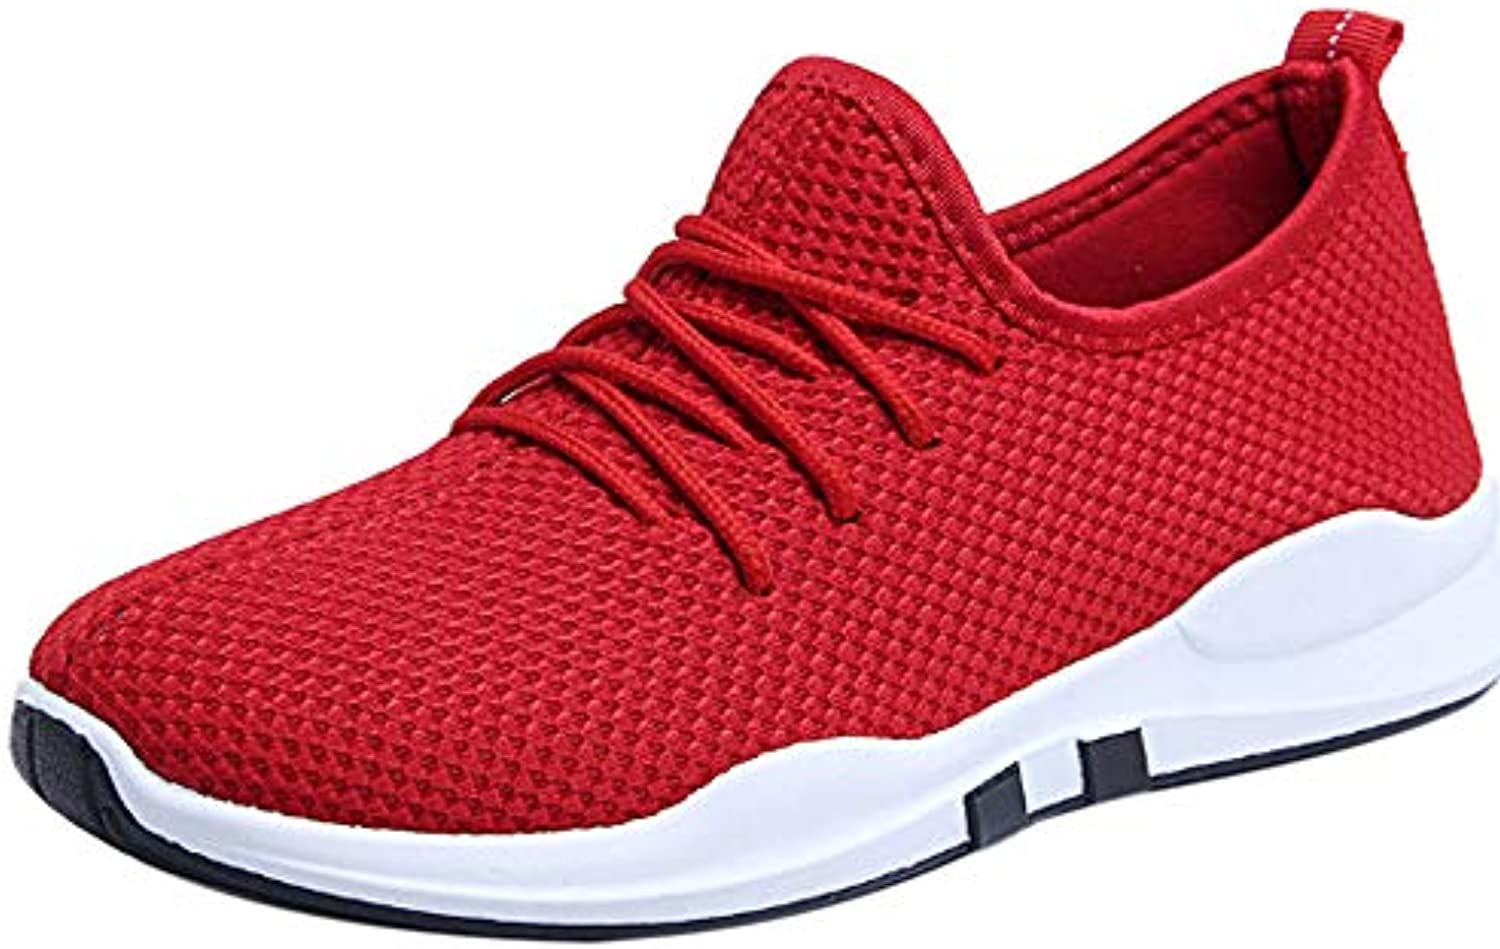 e78e924eb0f FALAIDUO Women Fashion Mesh Breathable Running Running Running Shoes  Outdoor Casual Solid Color Soft Soft Running Autumn Winter... Parent  B07GXSL455 8f70e2